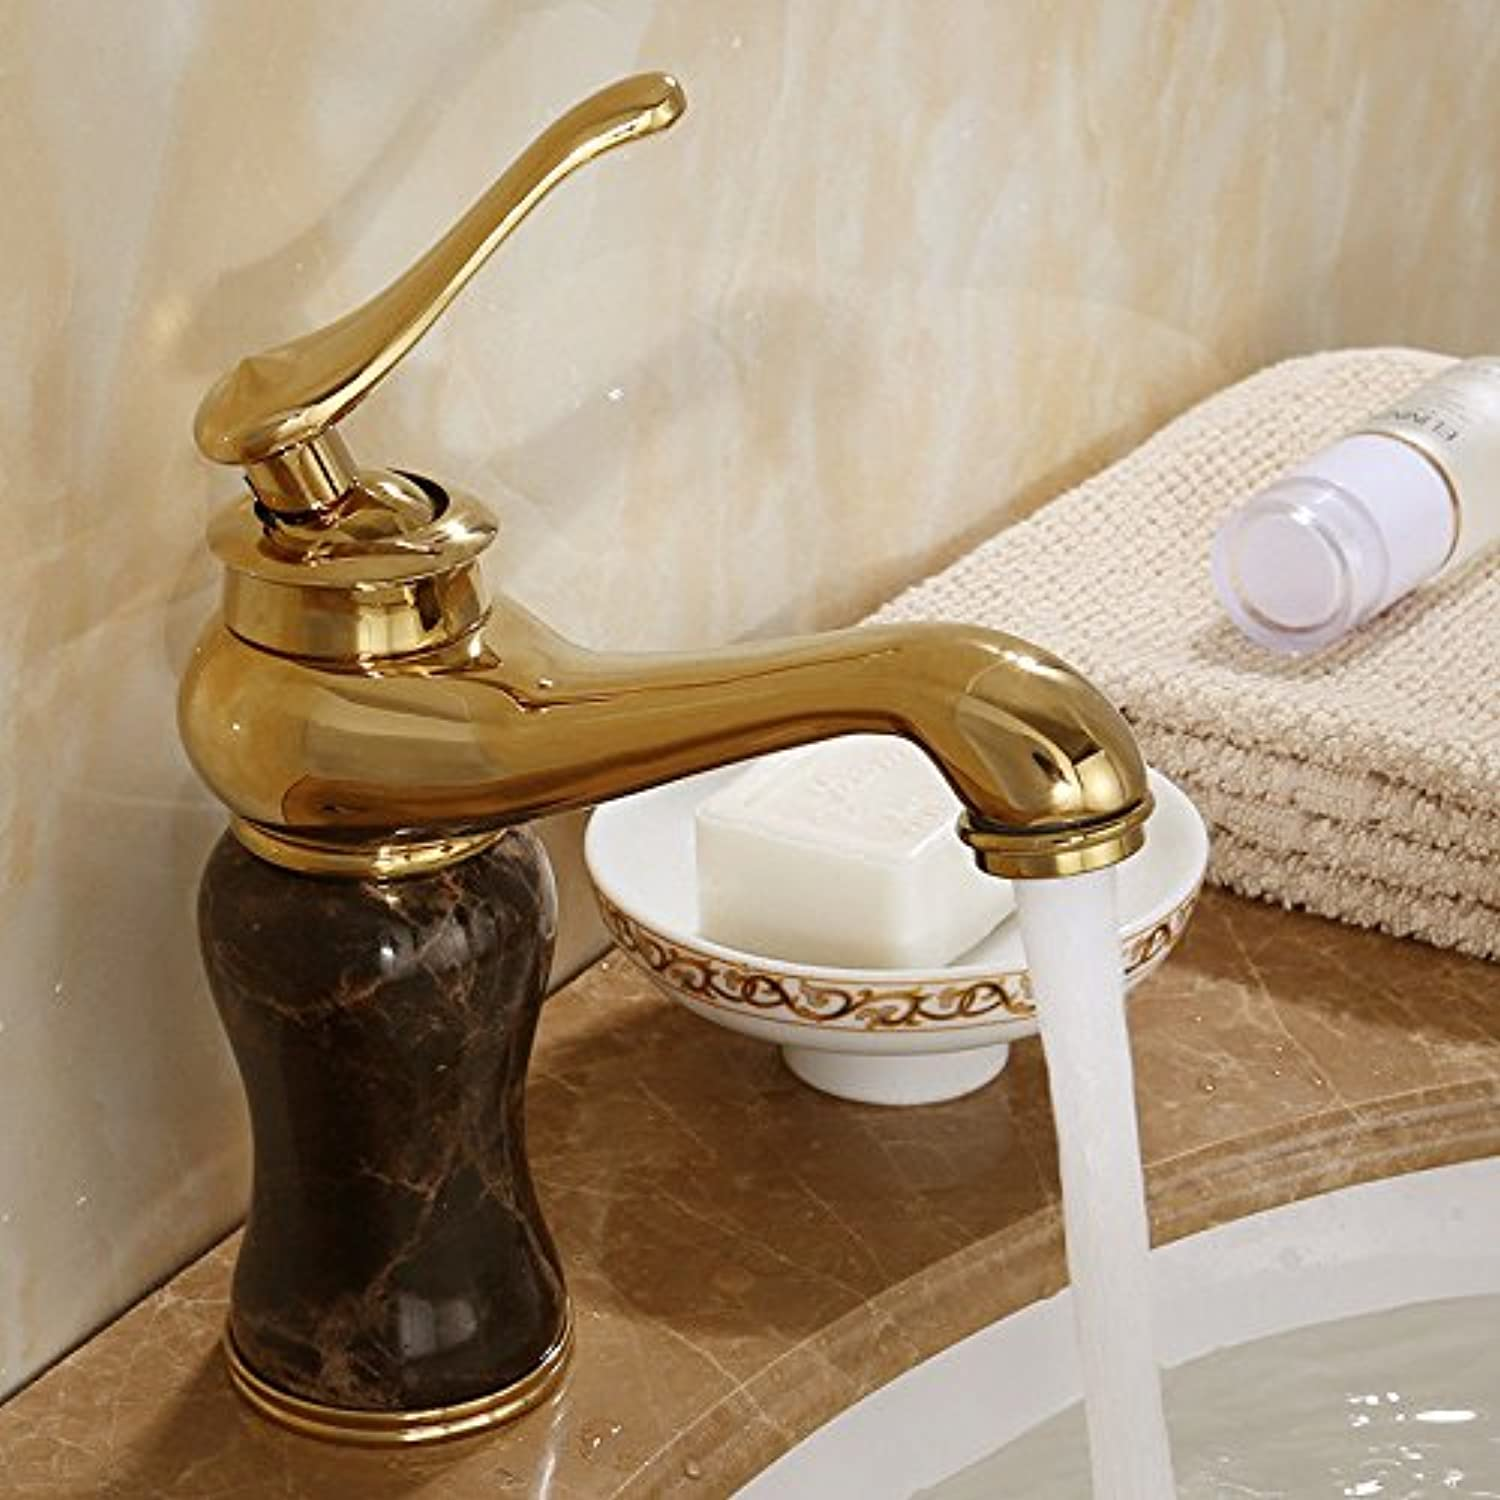 Hlluya Professional Sink Mixer Tap Kitchen Faucet All copper antique faucet sink hot and cold pink gold golden Jade Bathroom Cabinet faucet,P